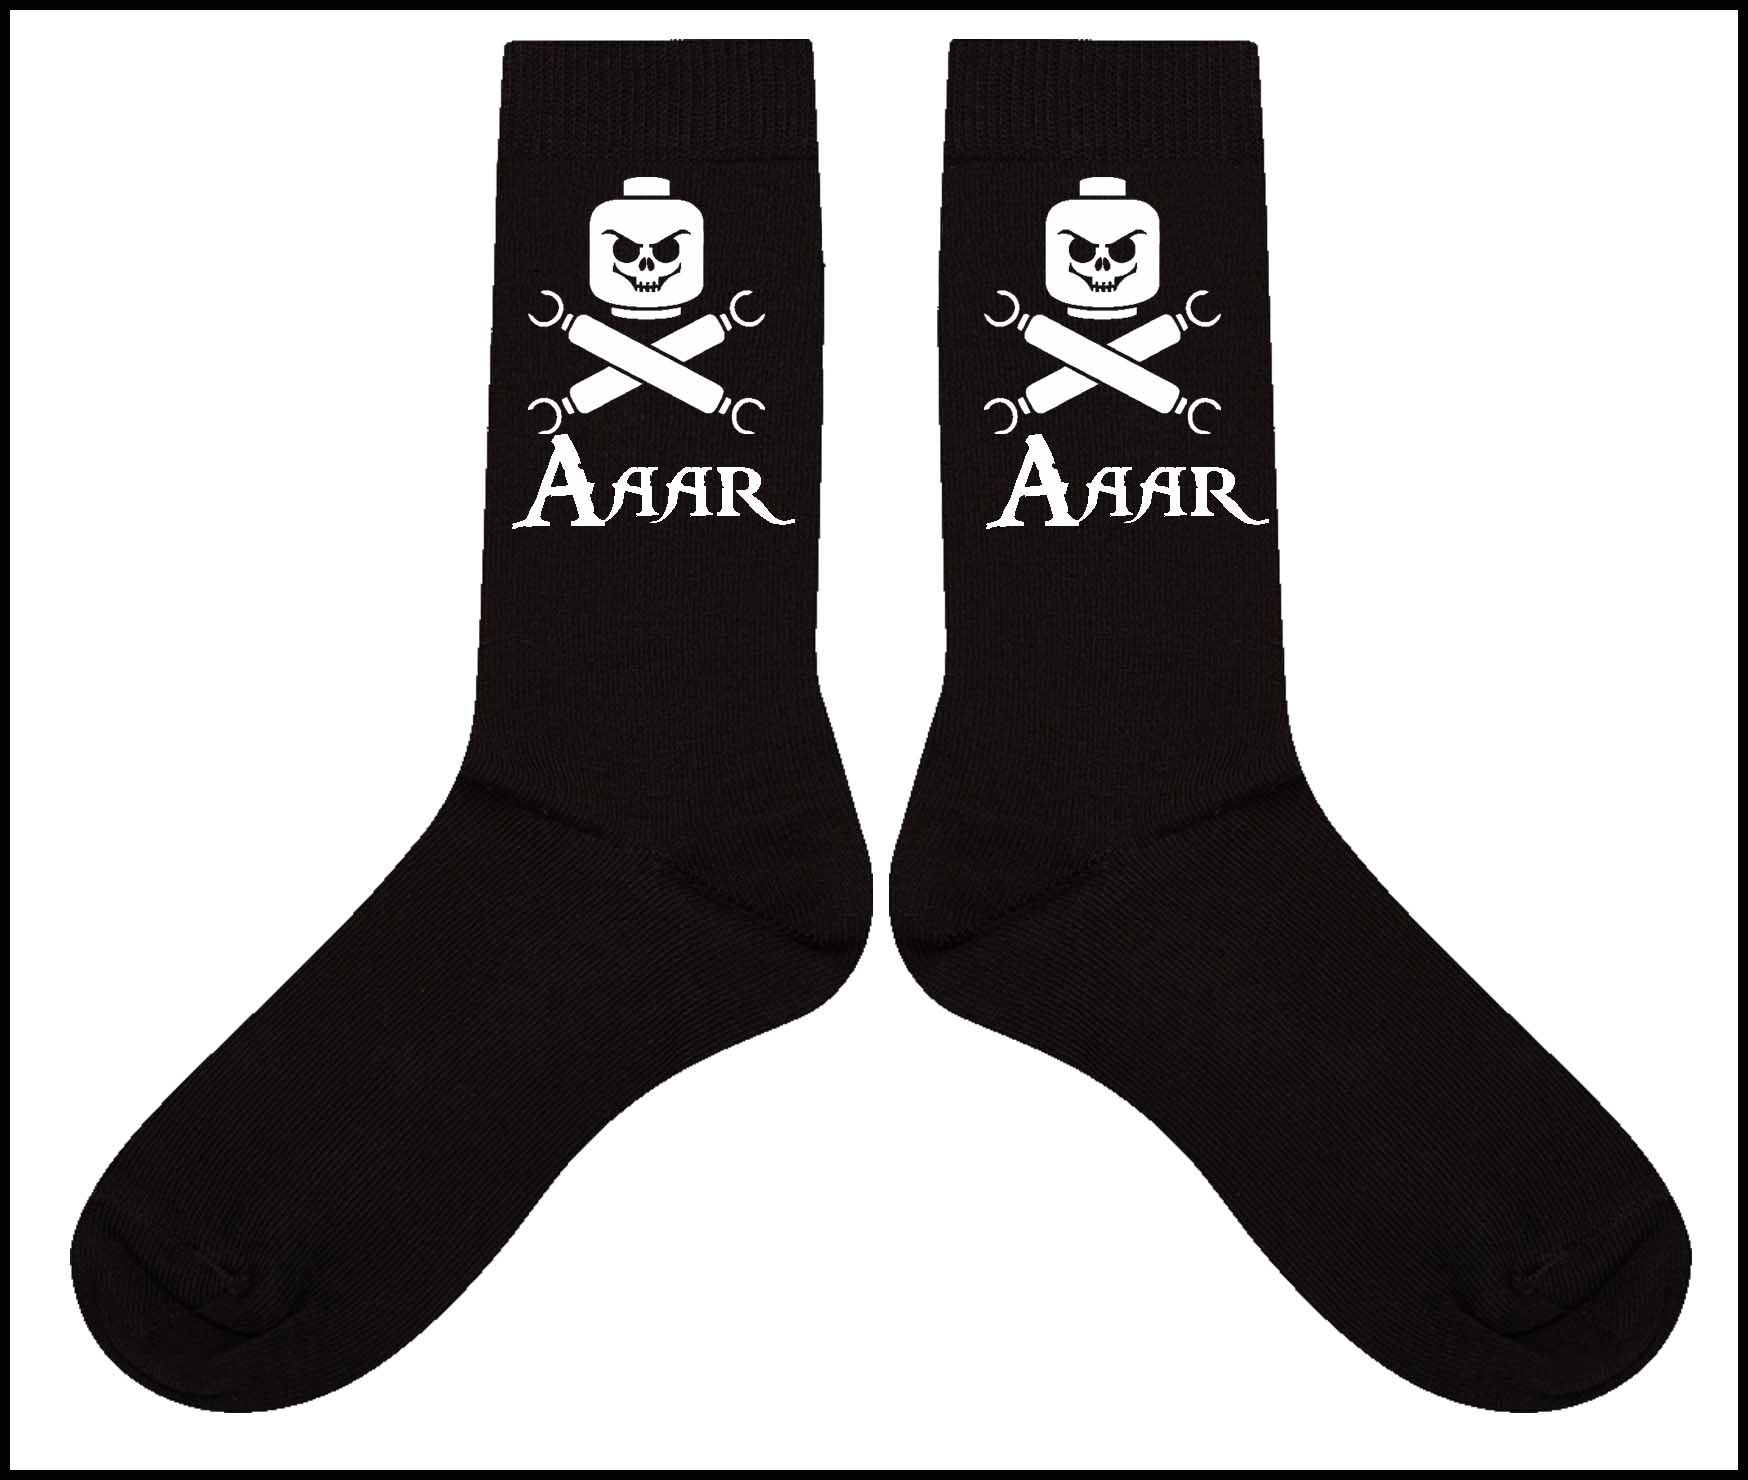 Lego skull and crossbones cotton men's Socks